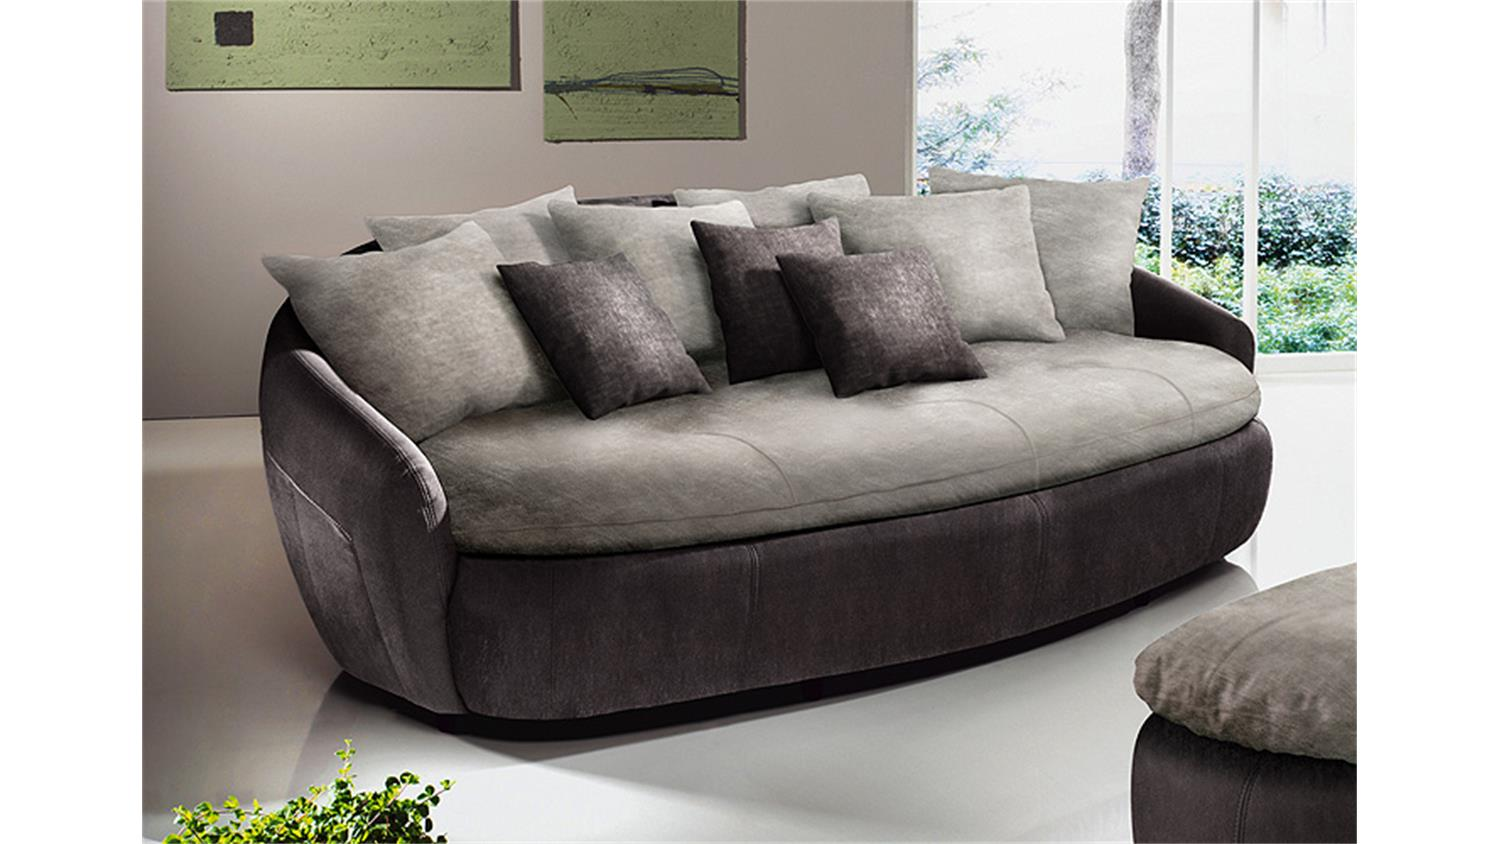 megasofa aruba 2 sofa in mud braun und elephant grau. Black Bedroom Furniture Sets. Home Design Ideas